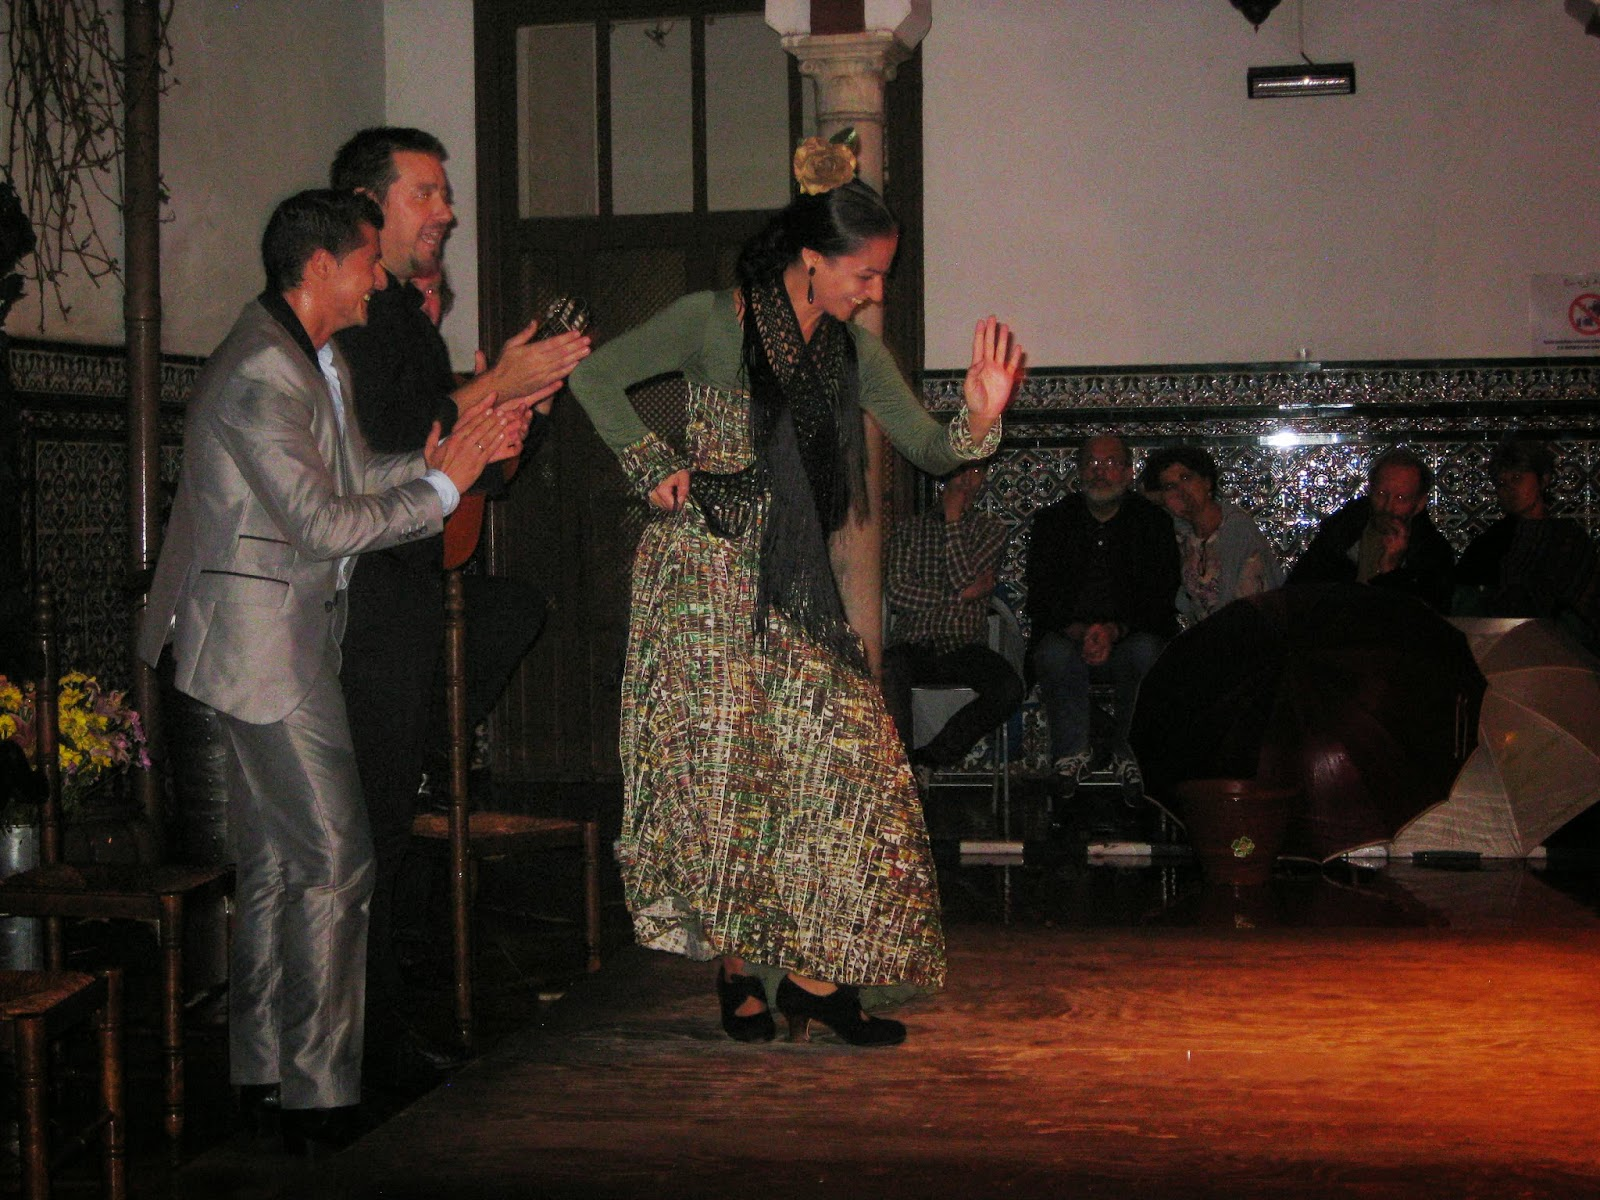 Seville - Flamenco show at La Casa del Flamenco Auditorio Alcantara